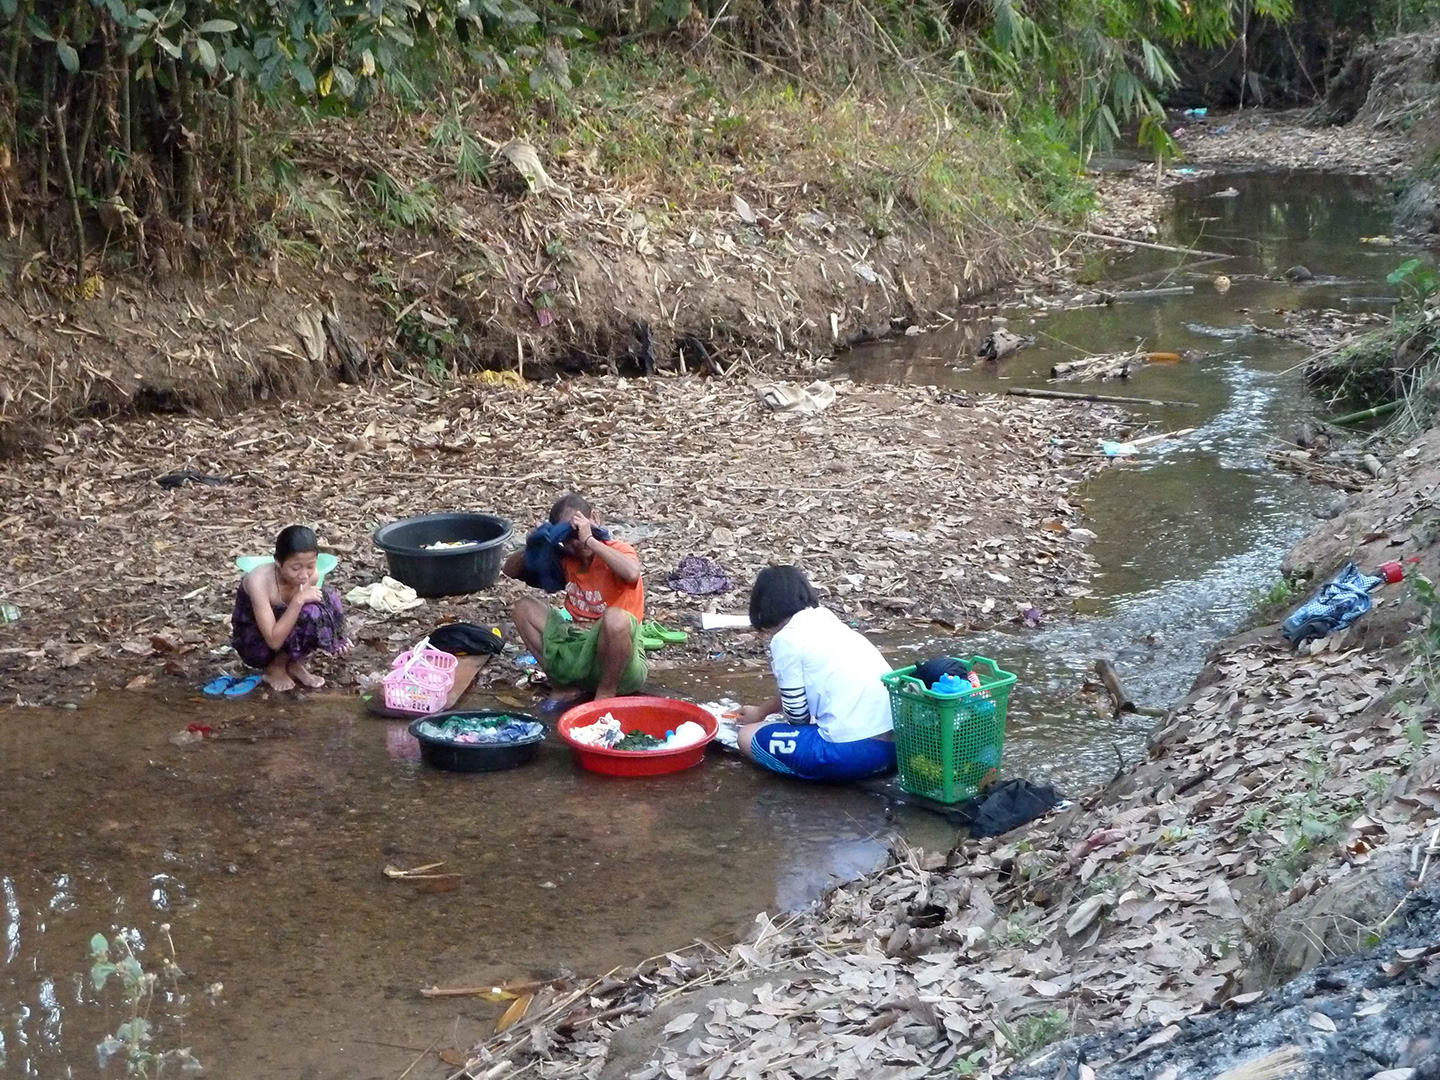 The locals doing laundry at the water source (Fung Na community)